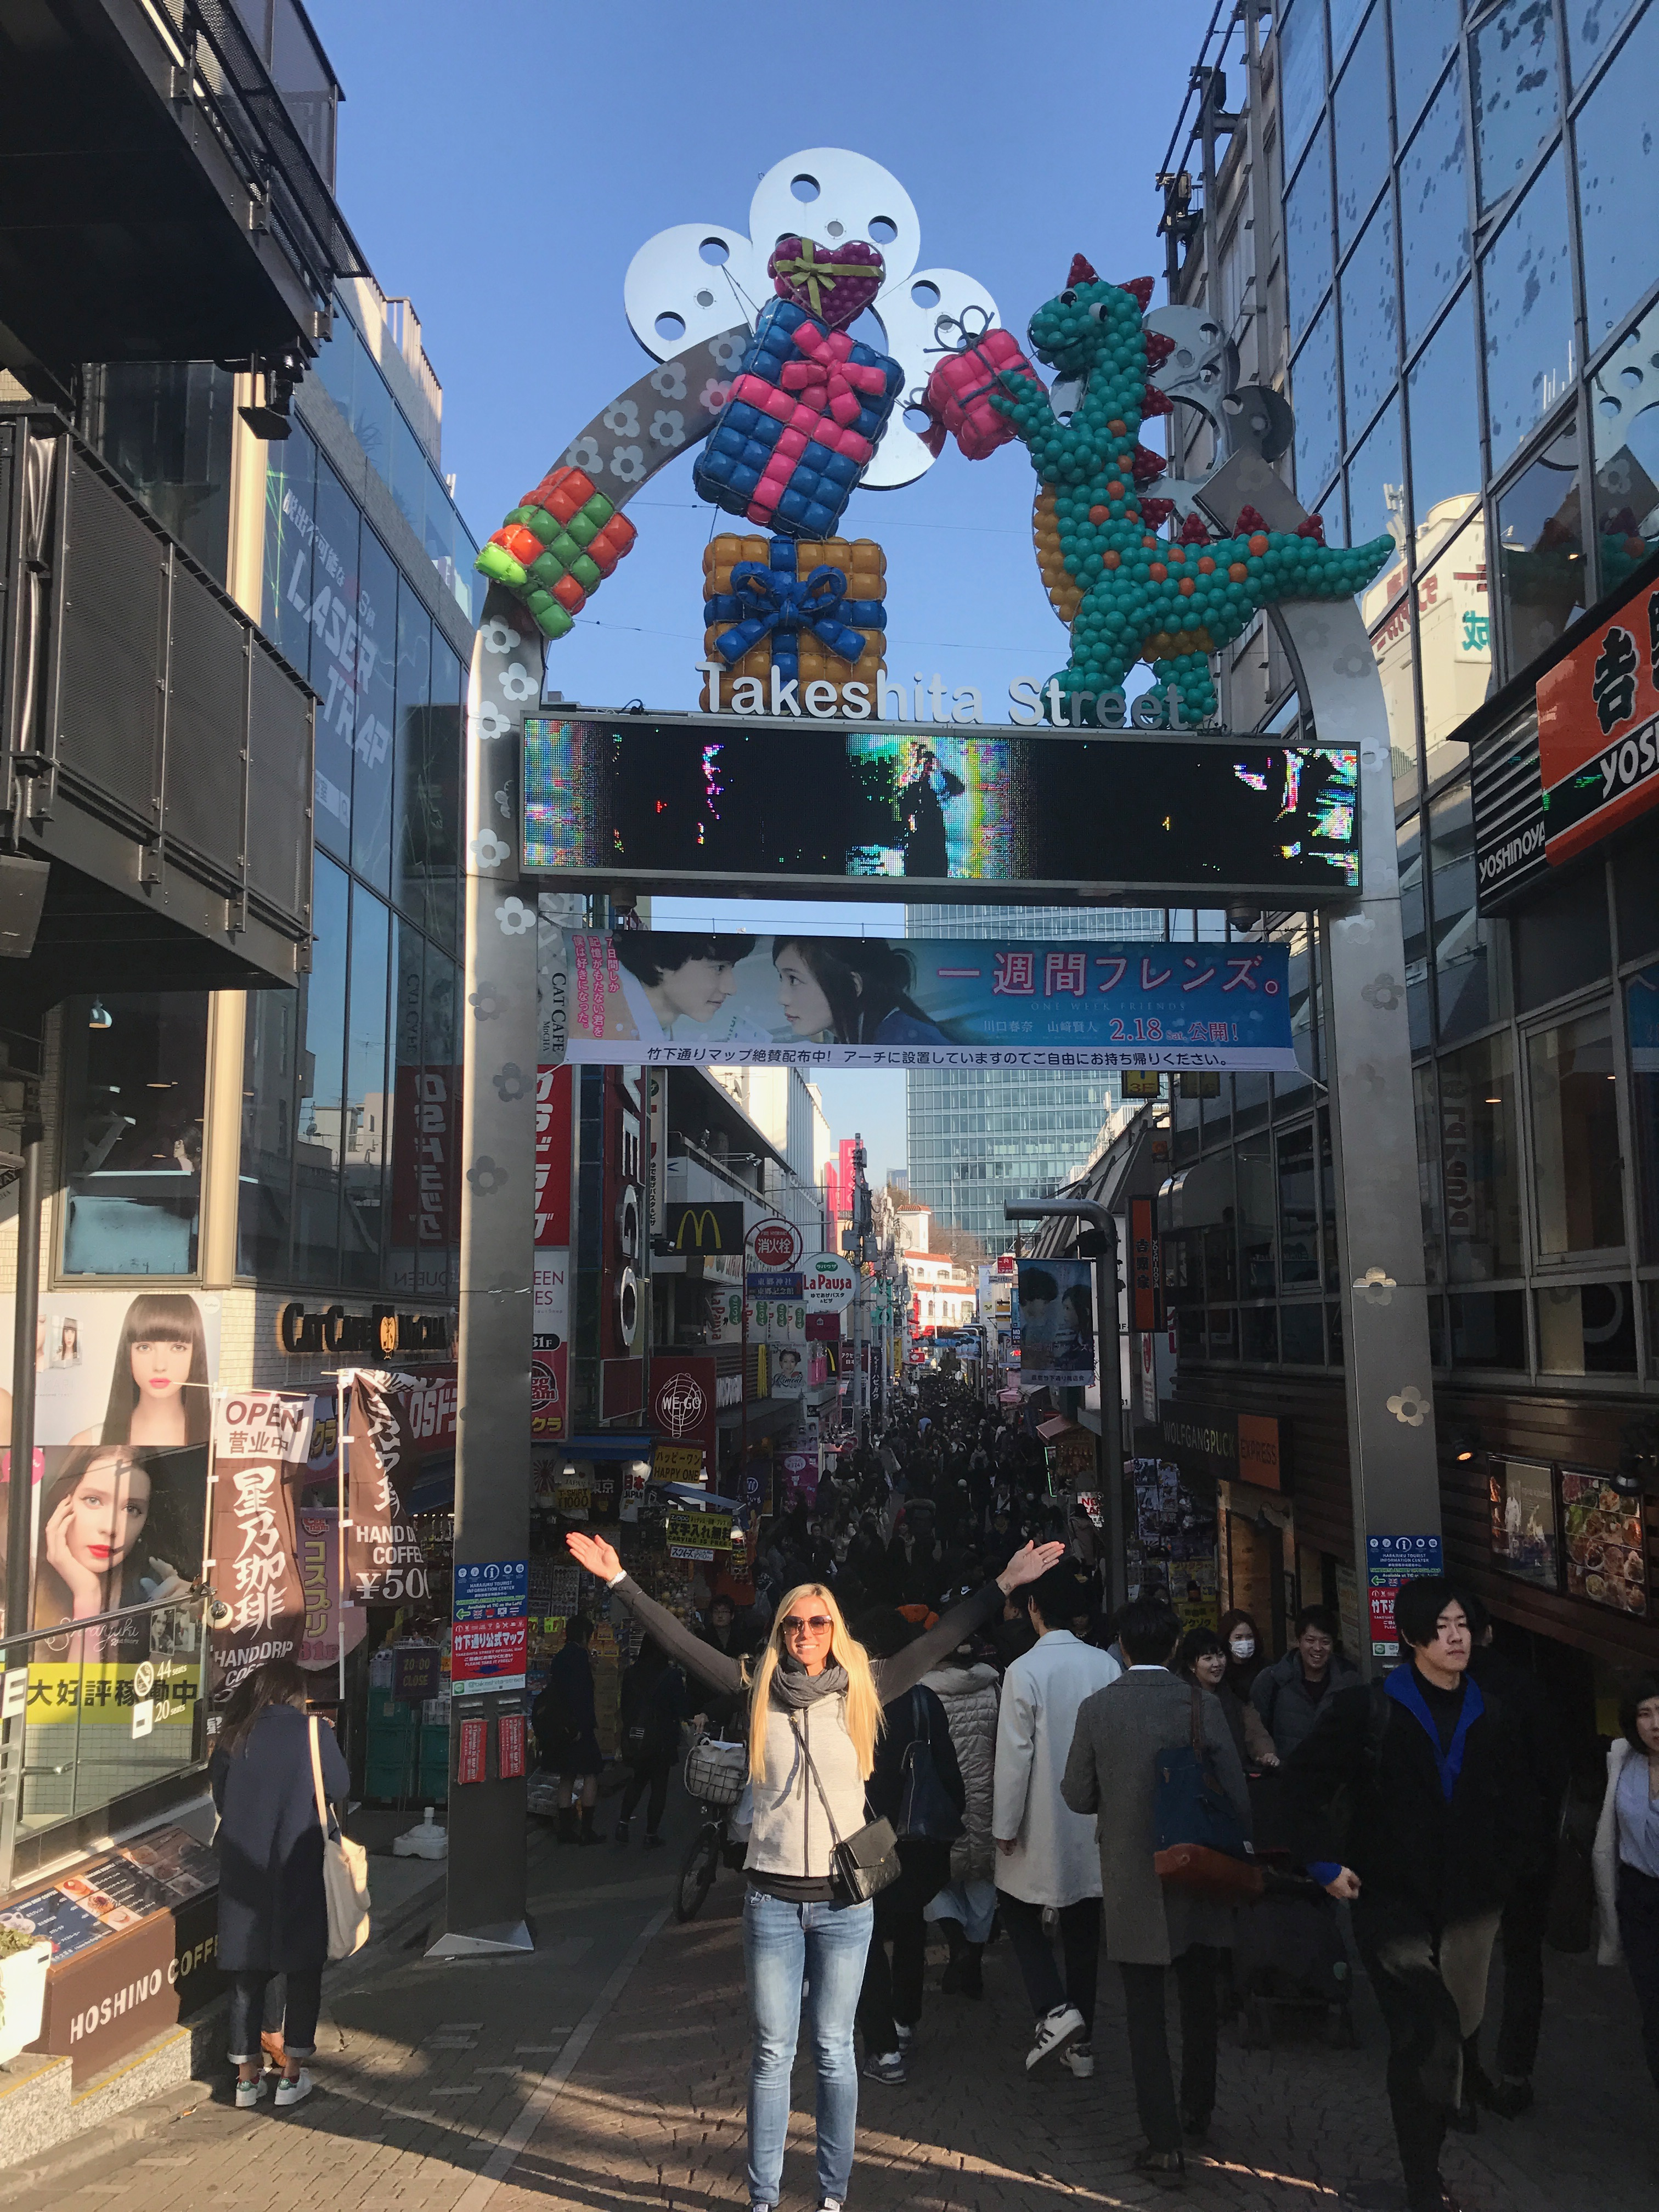 For all things food, shopping and fun, head to Takeshita Dori Street in Tokyo, Japan!